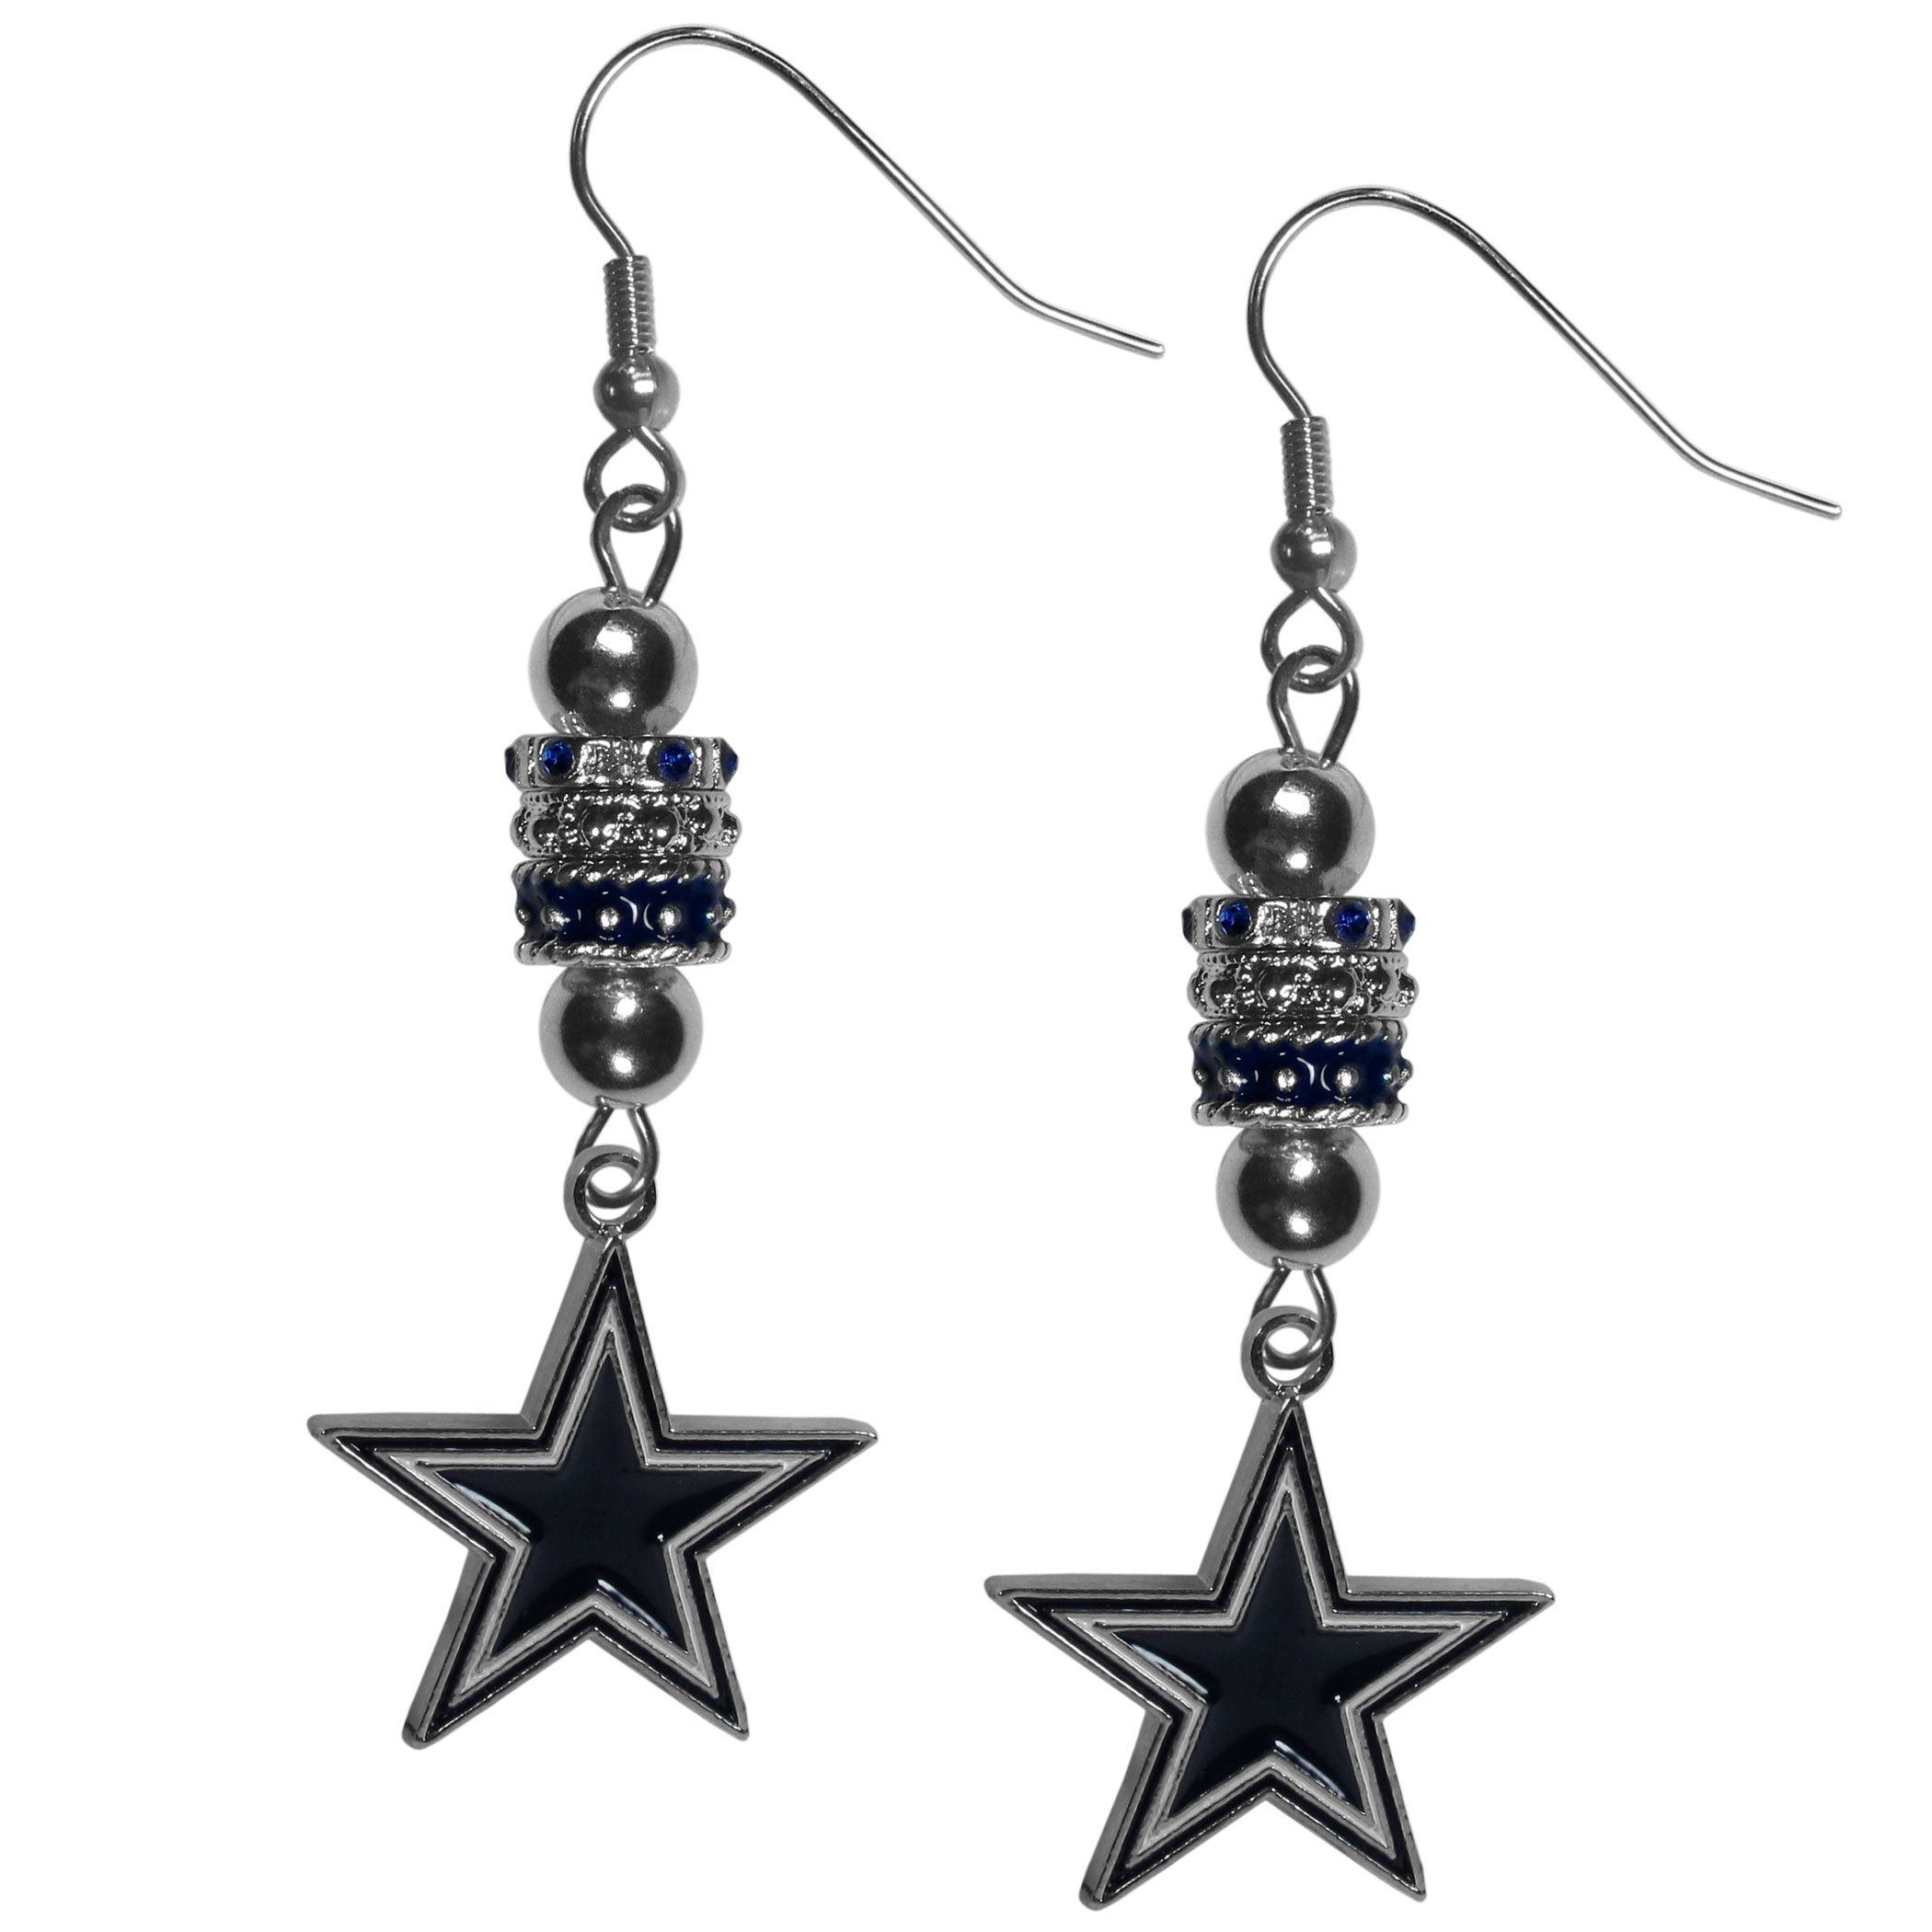 Dallas Cowboys Euro Bead Earrings - These beautiful euro style earrings feature 3 euro beads and a detailed Dallas Cowboys charm on hypoallergenic fishhook posts.